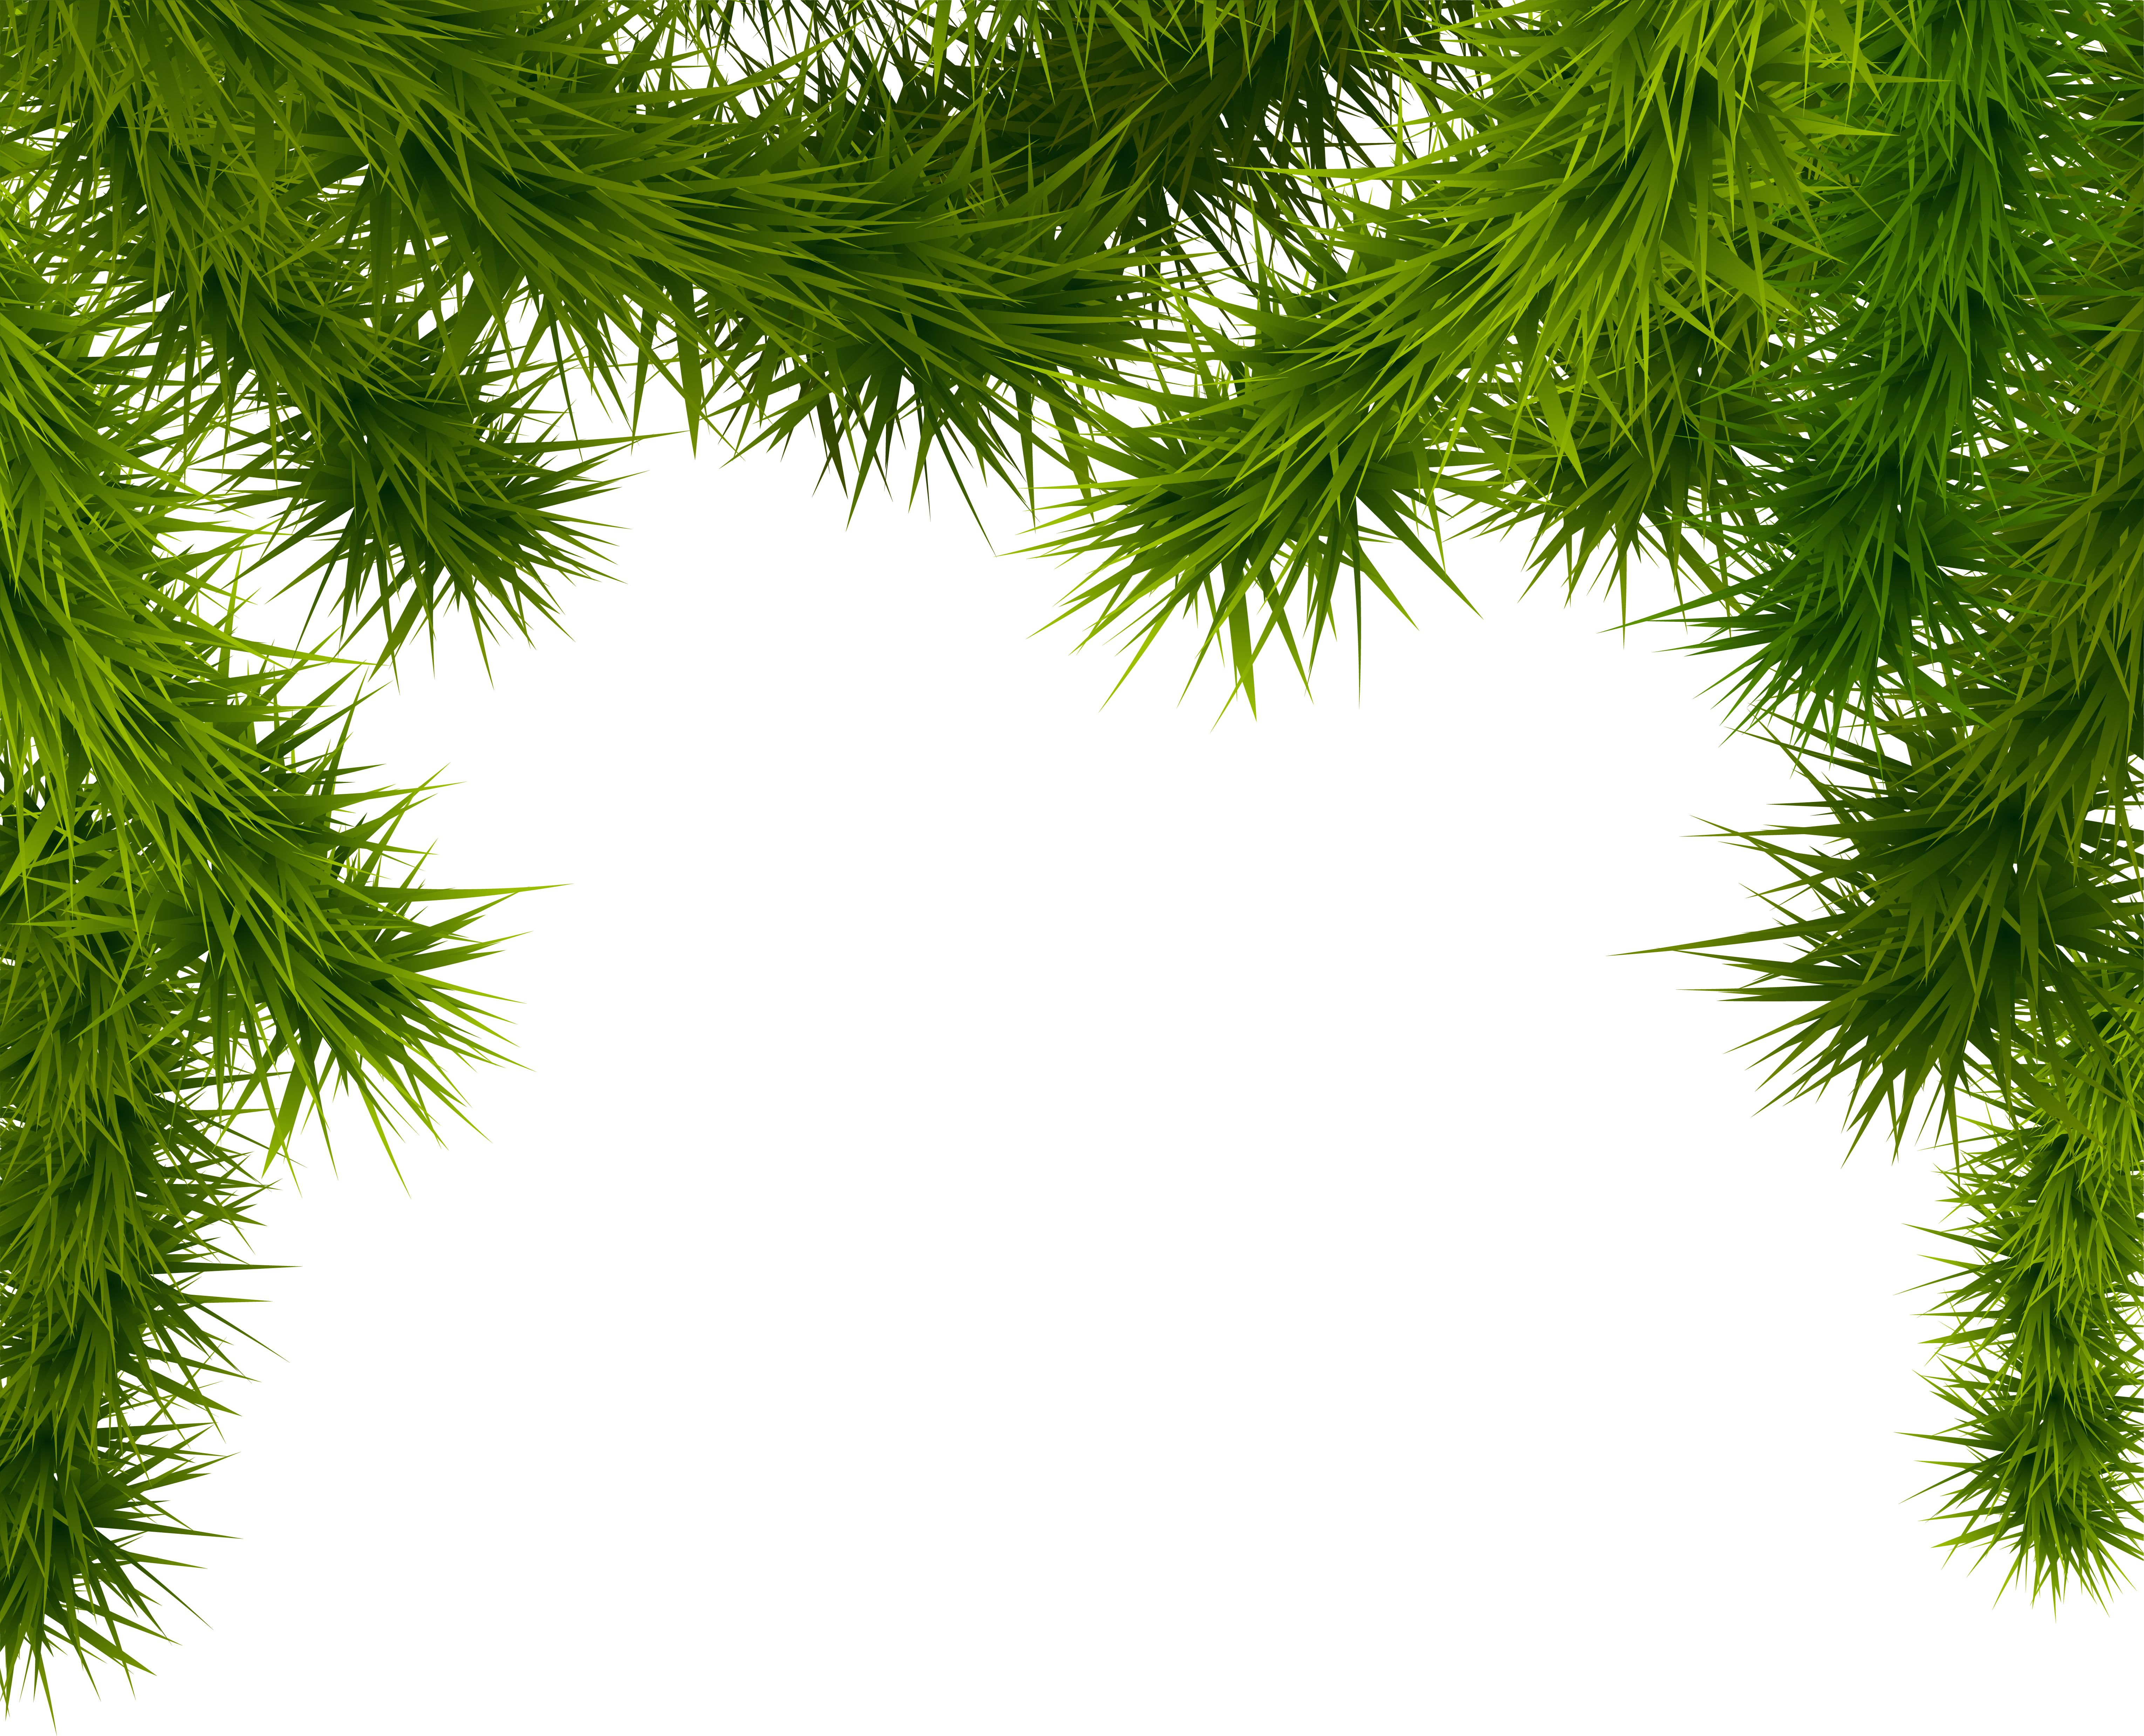 Clipart frame tree. Pine branches png image